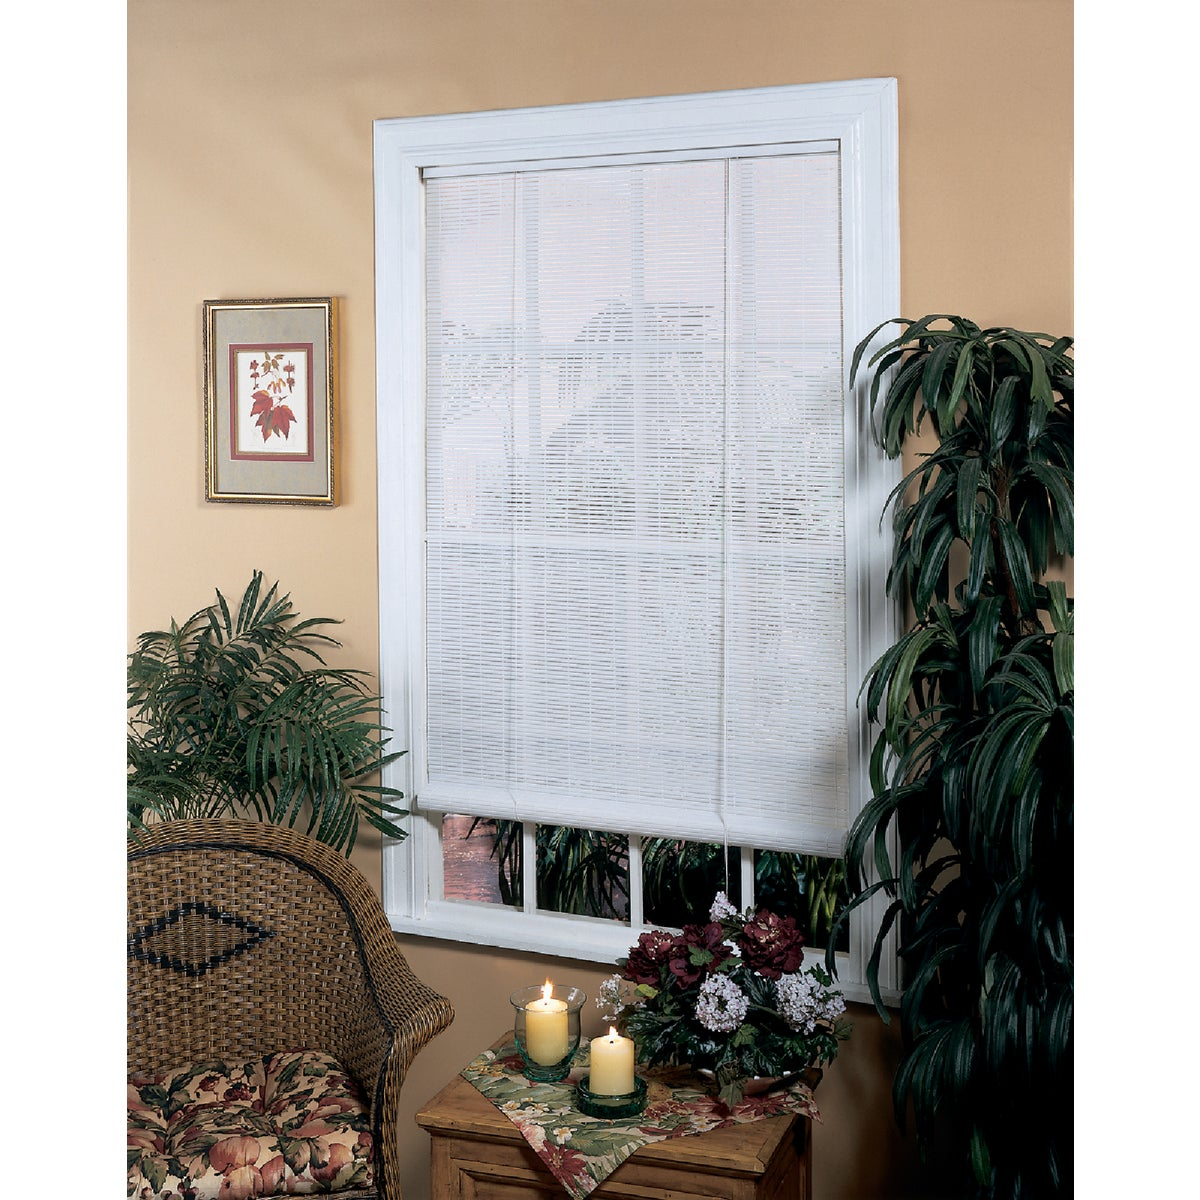 Do it Best Imports 36X72 WHT ROLL-UP BLIND 3672R101